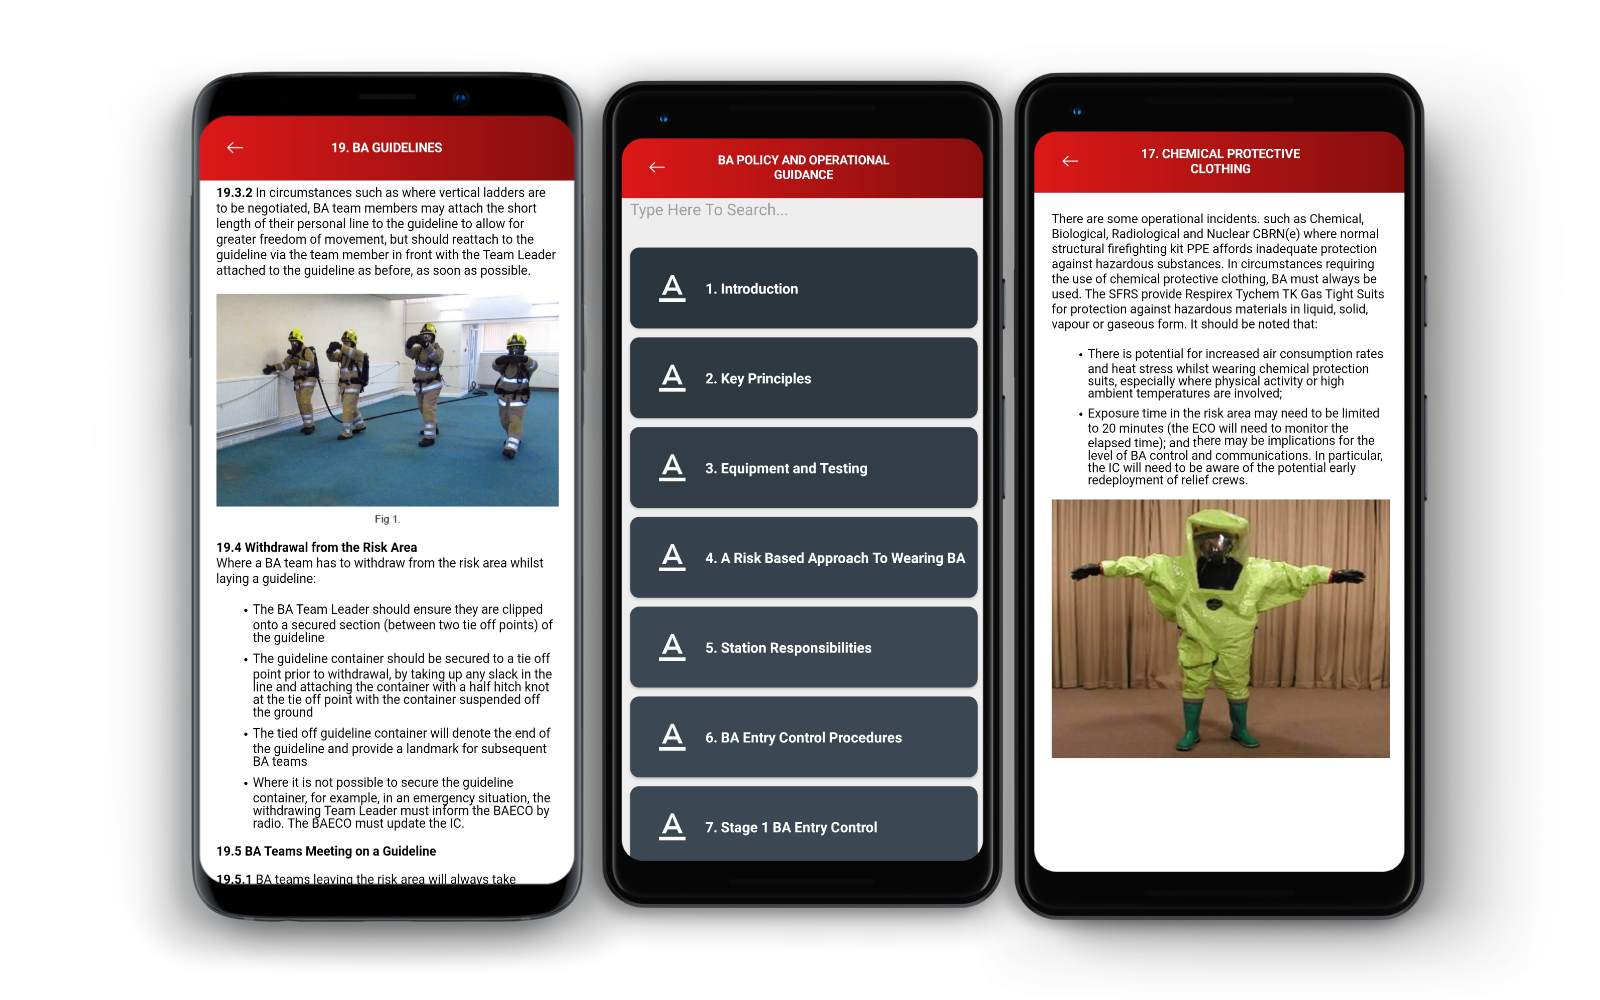 Fire and Rescue Services Using Data Banks. Risk management documents and operational checklists displayed on mobile devices